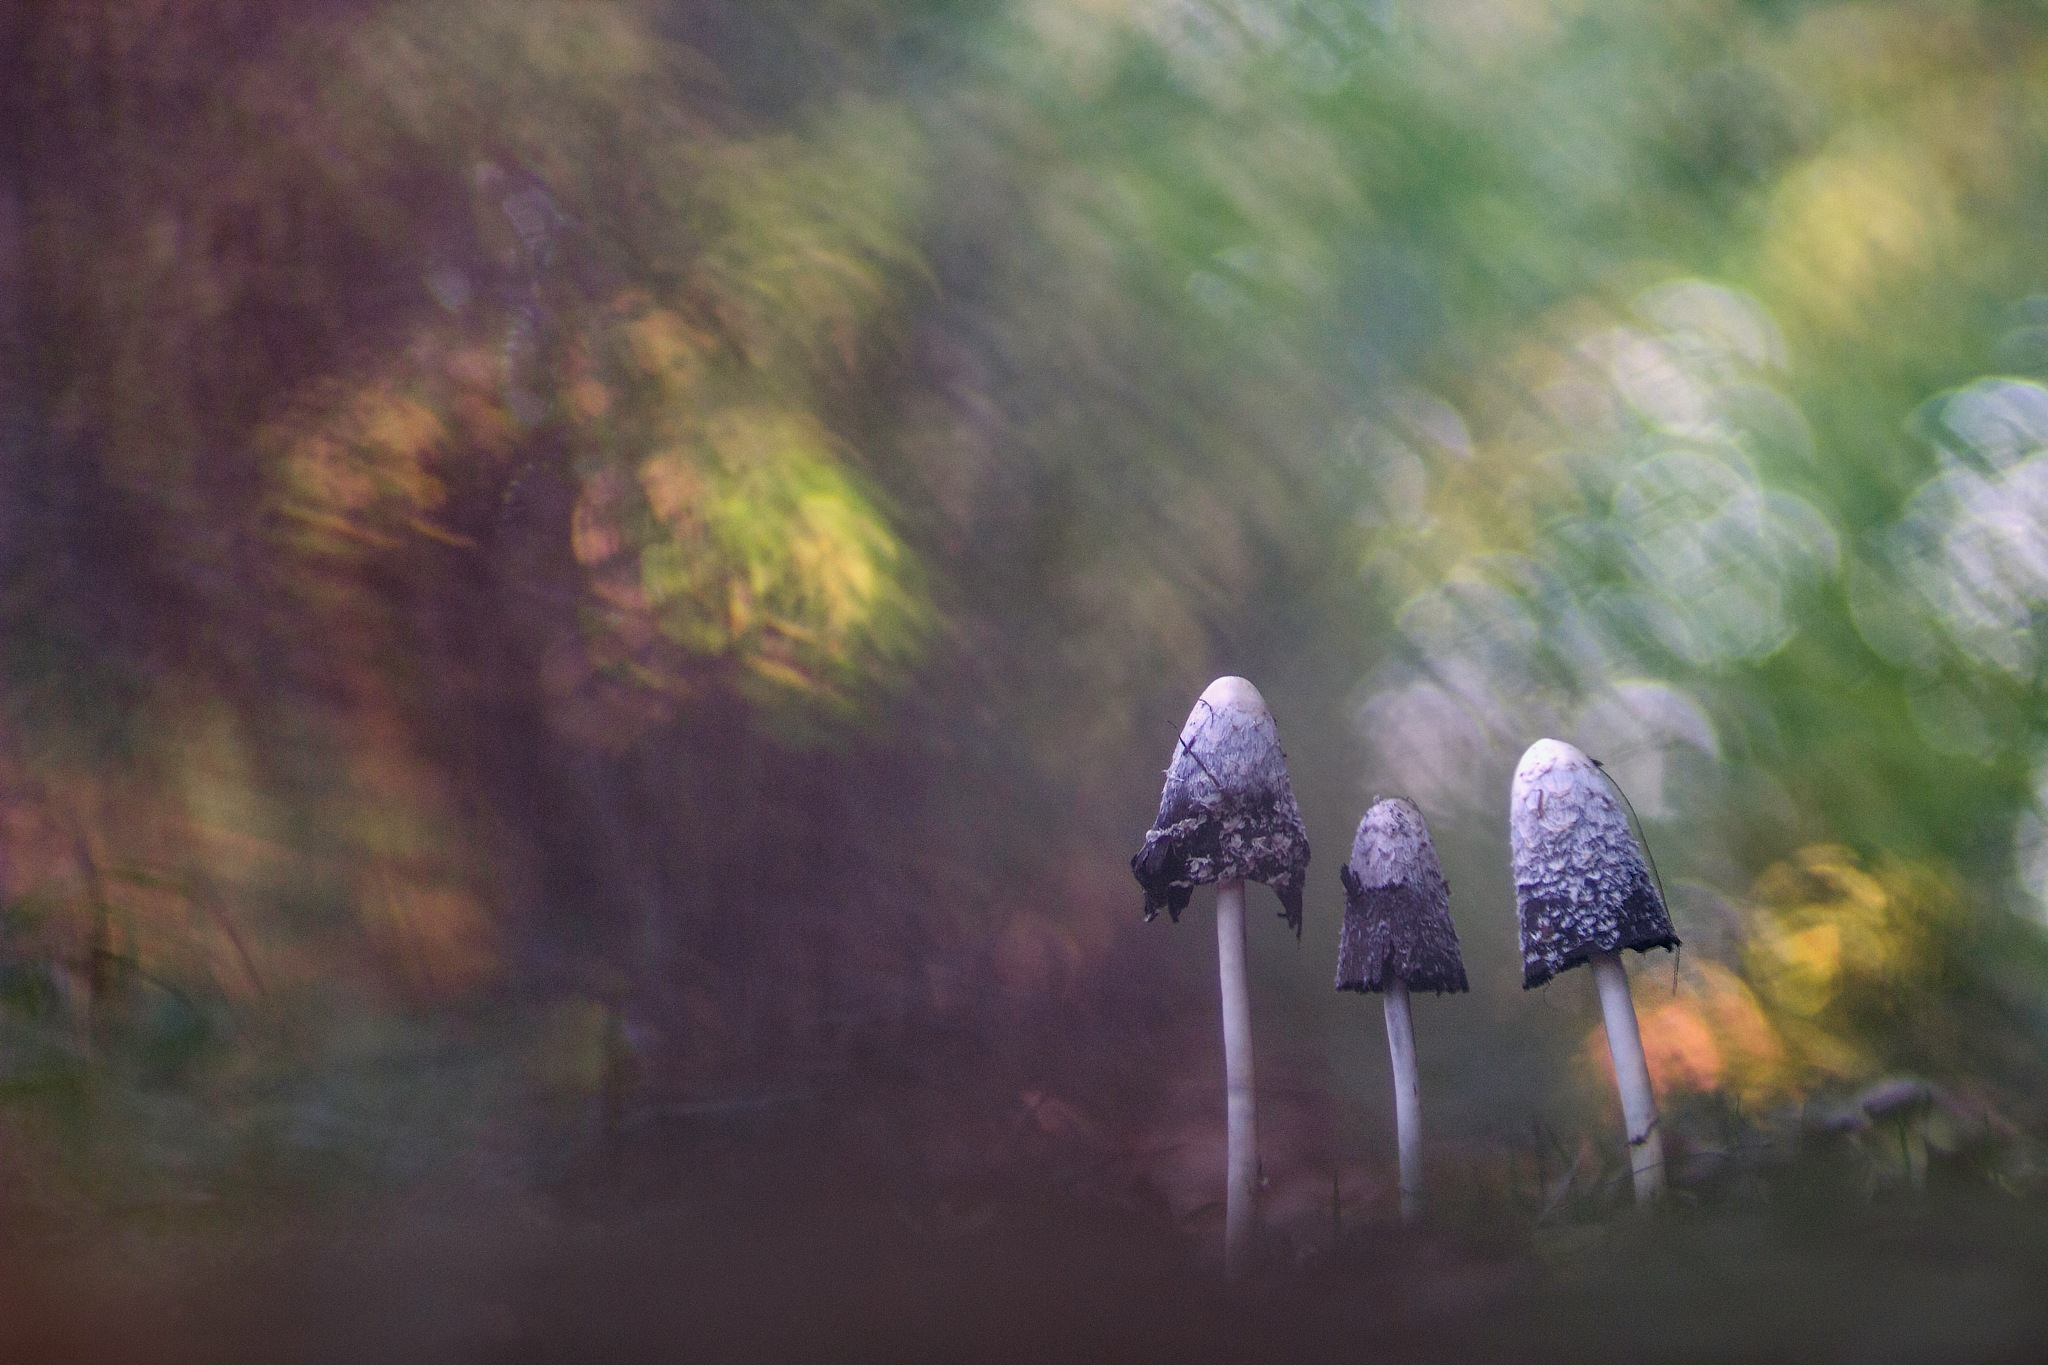 Champignons by Yves Droeven